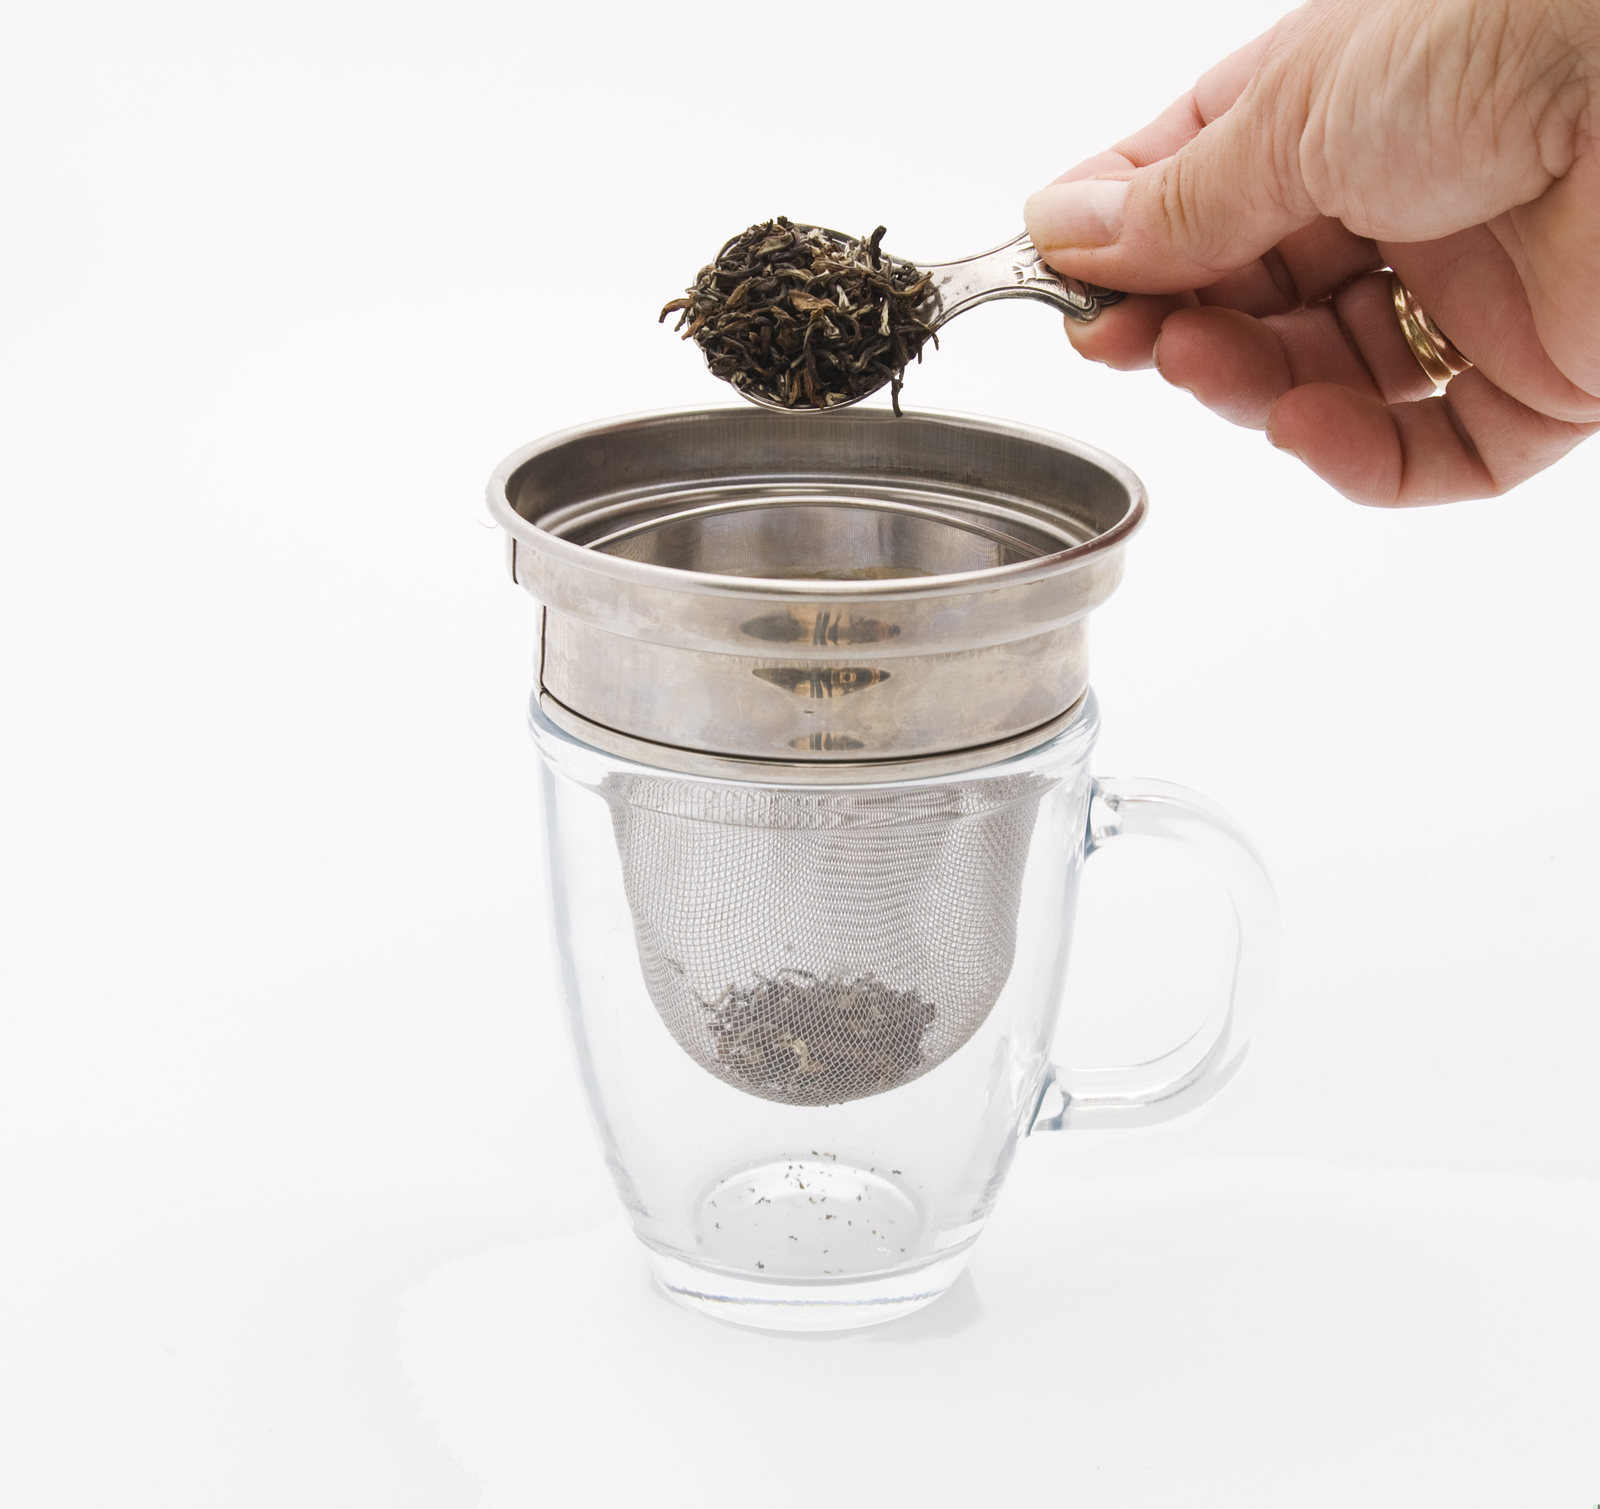 Infuser | How to Brew Loose Leaf Tea: Everything You Need To Know